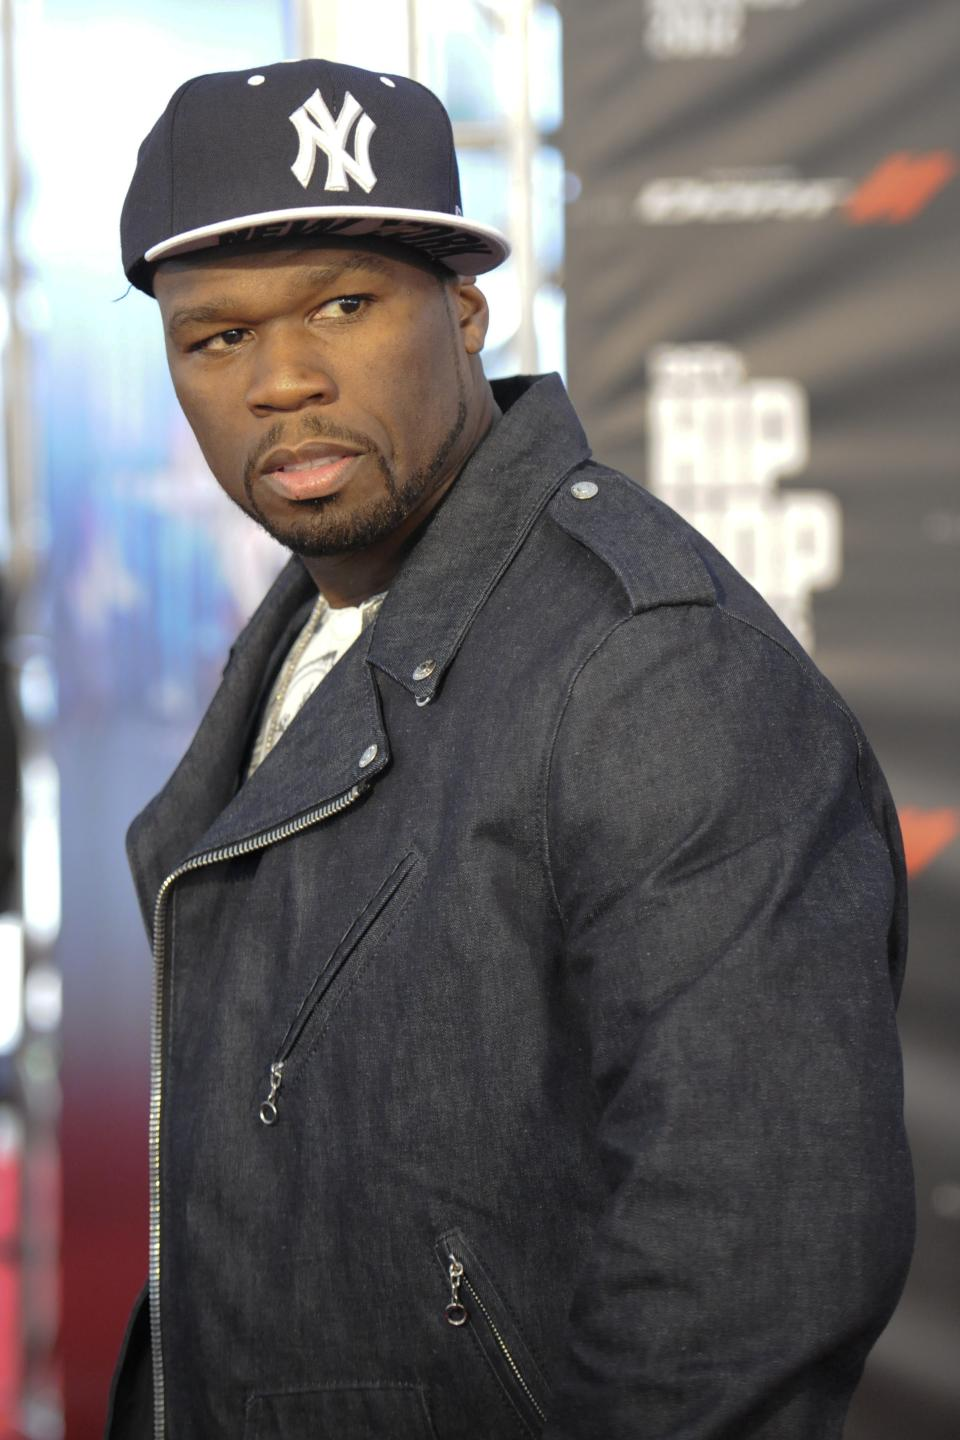 Artist  50 Cent attends the BET Hip-Hop Honors red carpet at Boisfeuillet Jones Atlanta Civic Center on Saturday, Sept. 29, 2012, in Atlanta. (Photo by John Amis/Invision/AP)